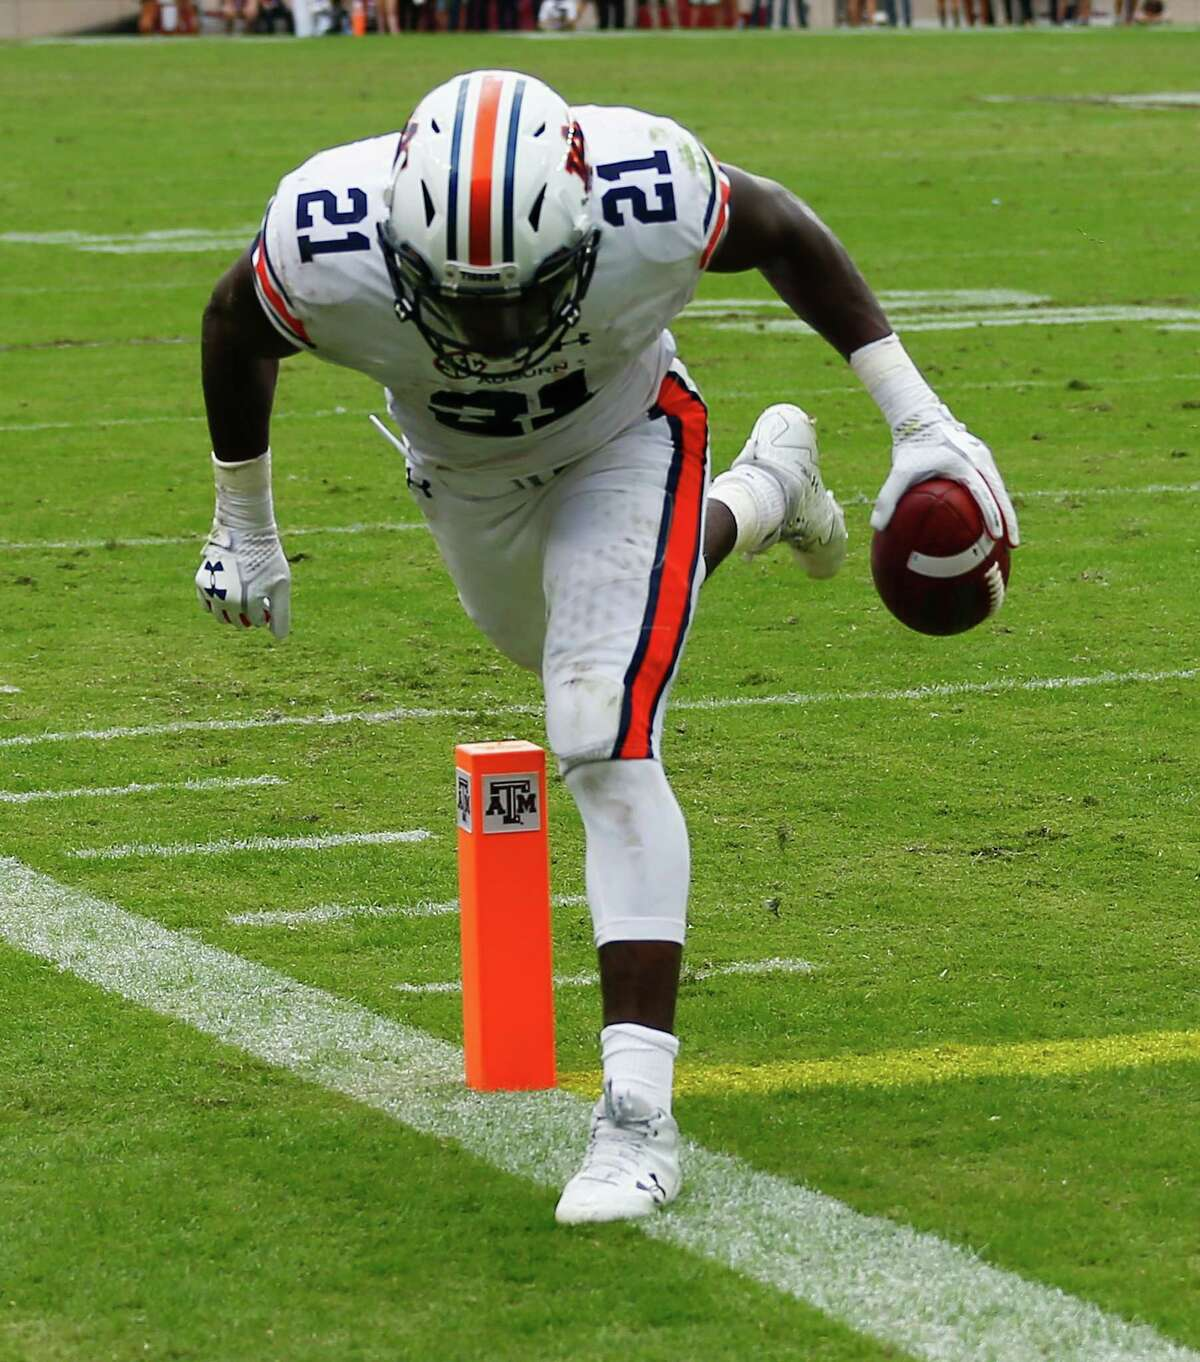 COLLEGE STATION, TX - NOVEMBER 04: Kerryon Johnson #21 of the Auburn Tigers scores on a 2 yard pass in the second quarter against the Texas A&M Aggies at Kyle Field on November 4, 2017 in College Station, Texas.